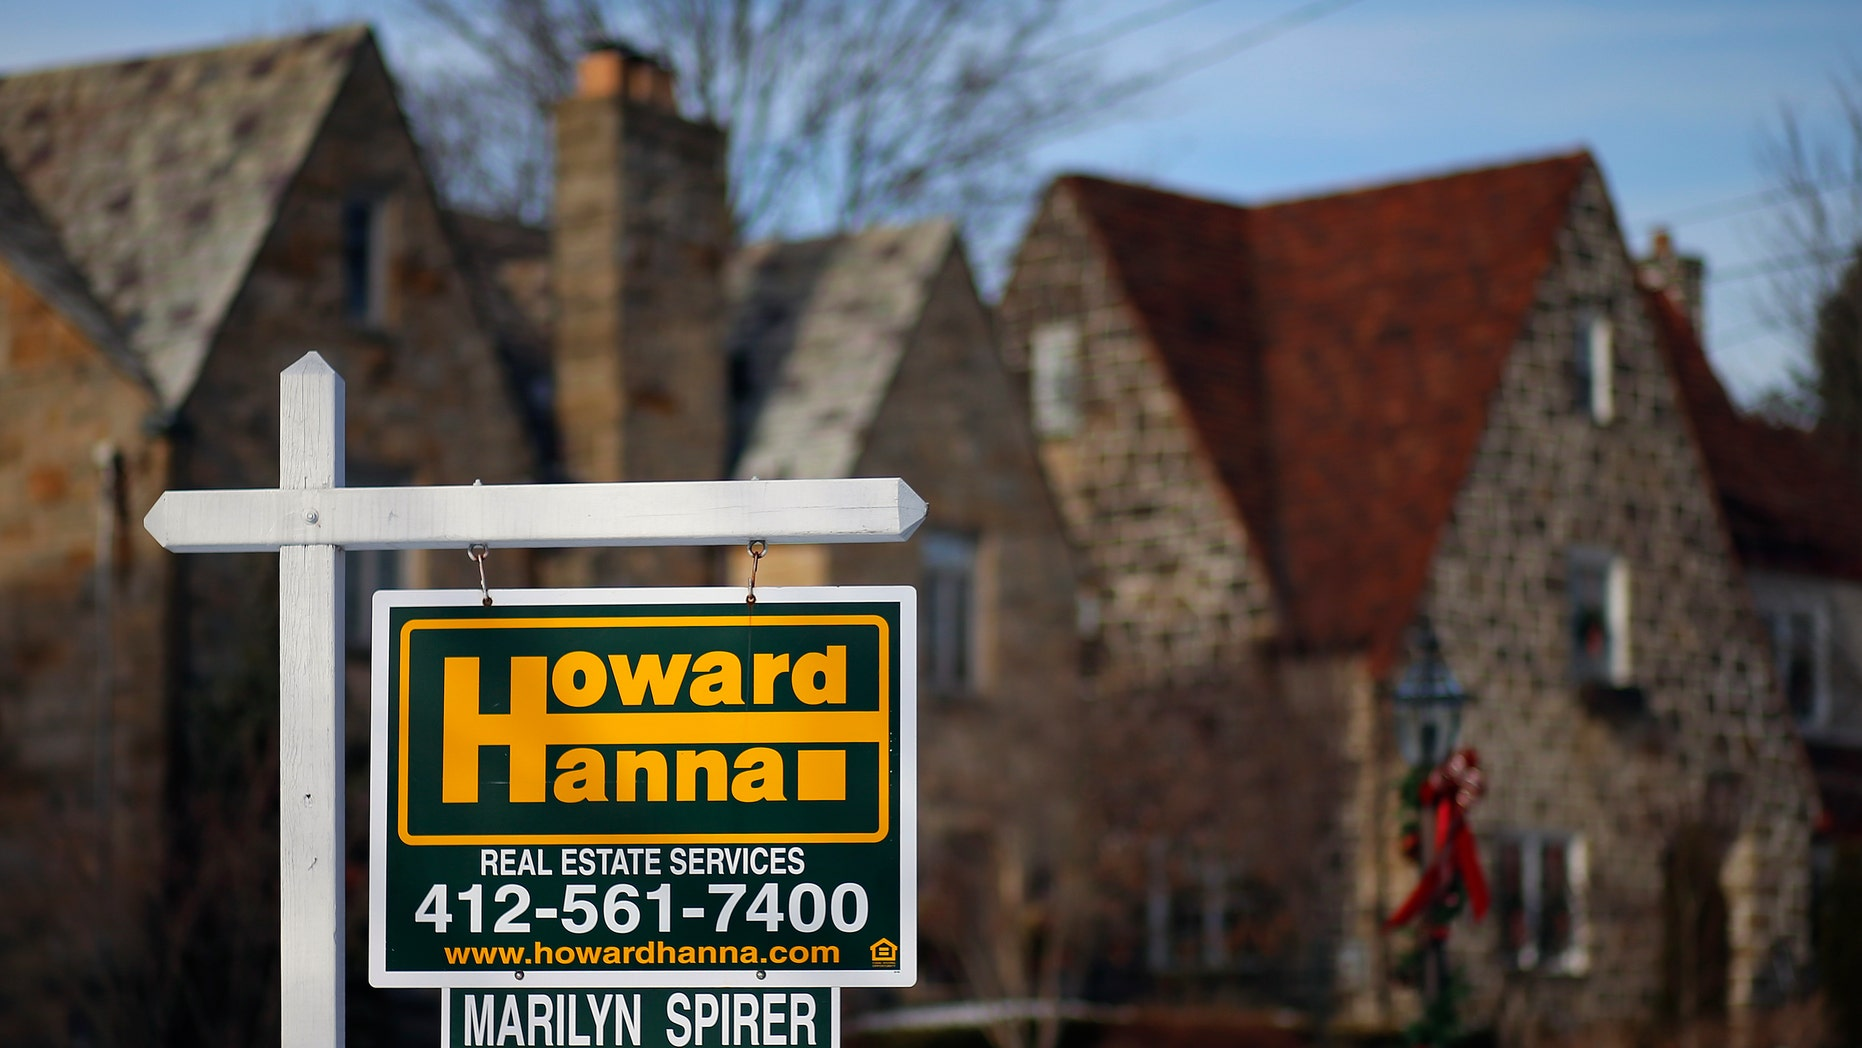 In this Thursday, Jan. 9, 2014, photo, a for sale sign hangs in front of a house in Mount Lebanon, Pa. The National Association of Realtors releases existing home sales for December, on Thursday, Jan. 23, 2014. (AP Photo/Gene J. Puskar)